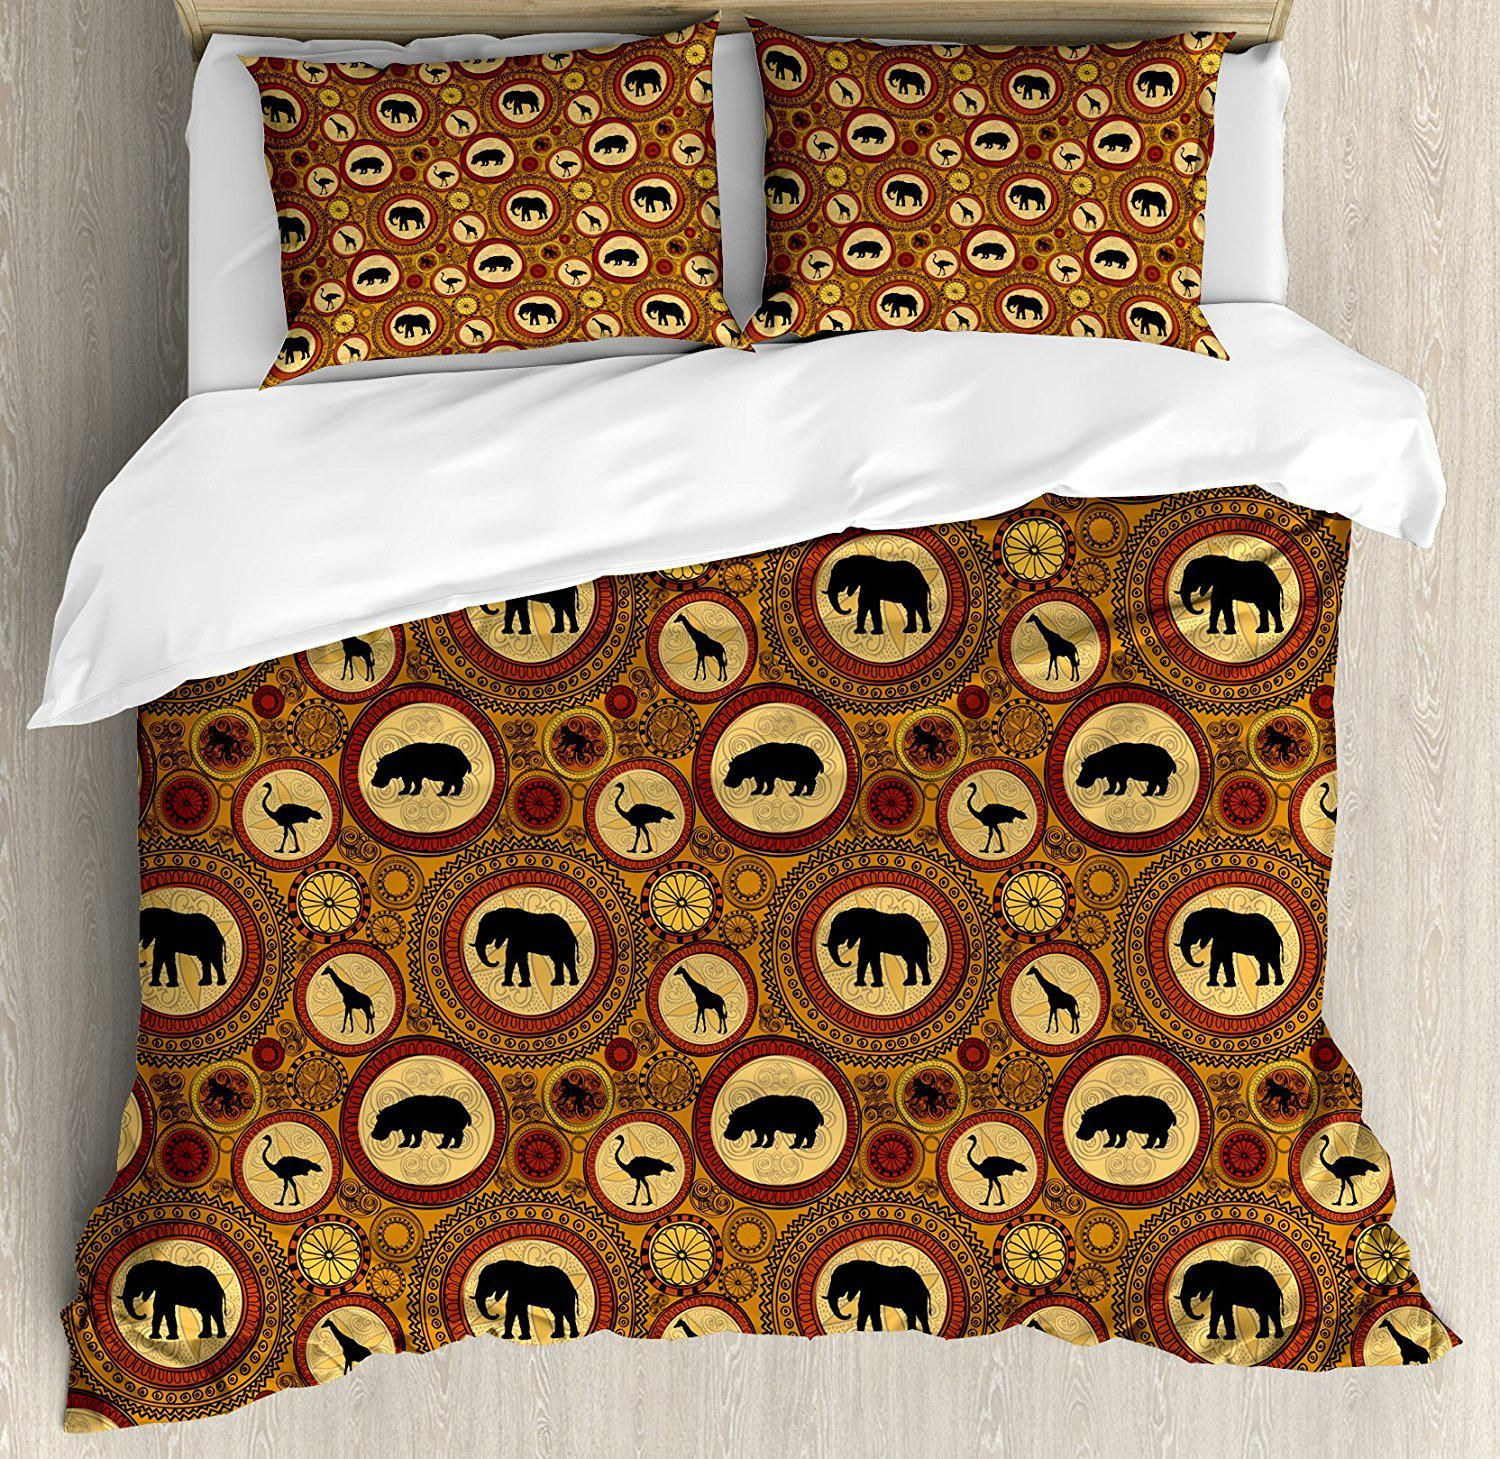 Zambia Duvet Cover Set African Ethnic Animals Elephant Camel Giraffe